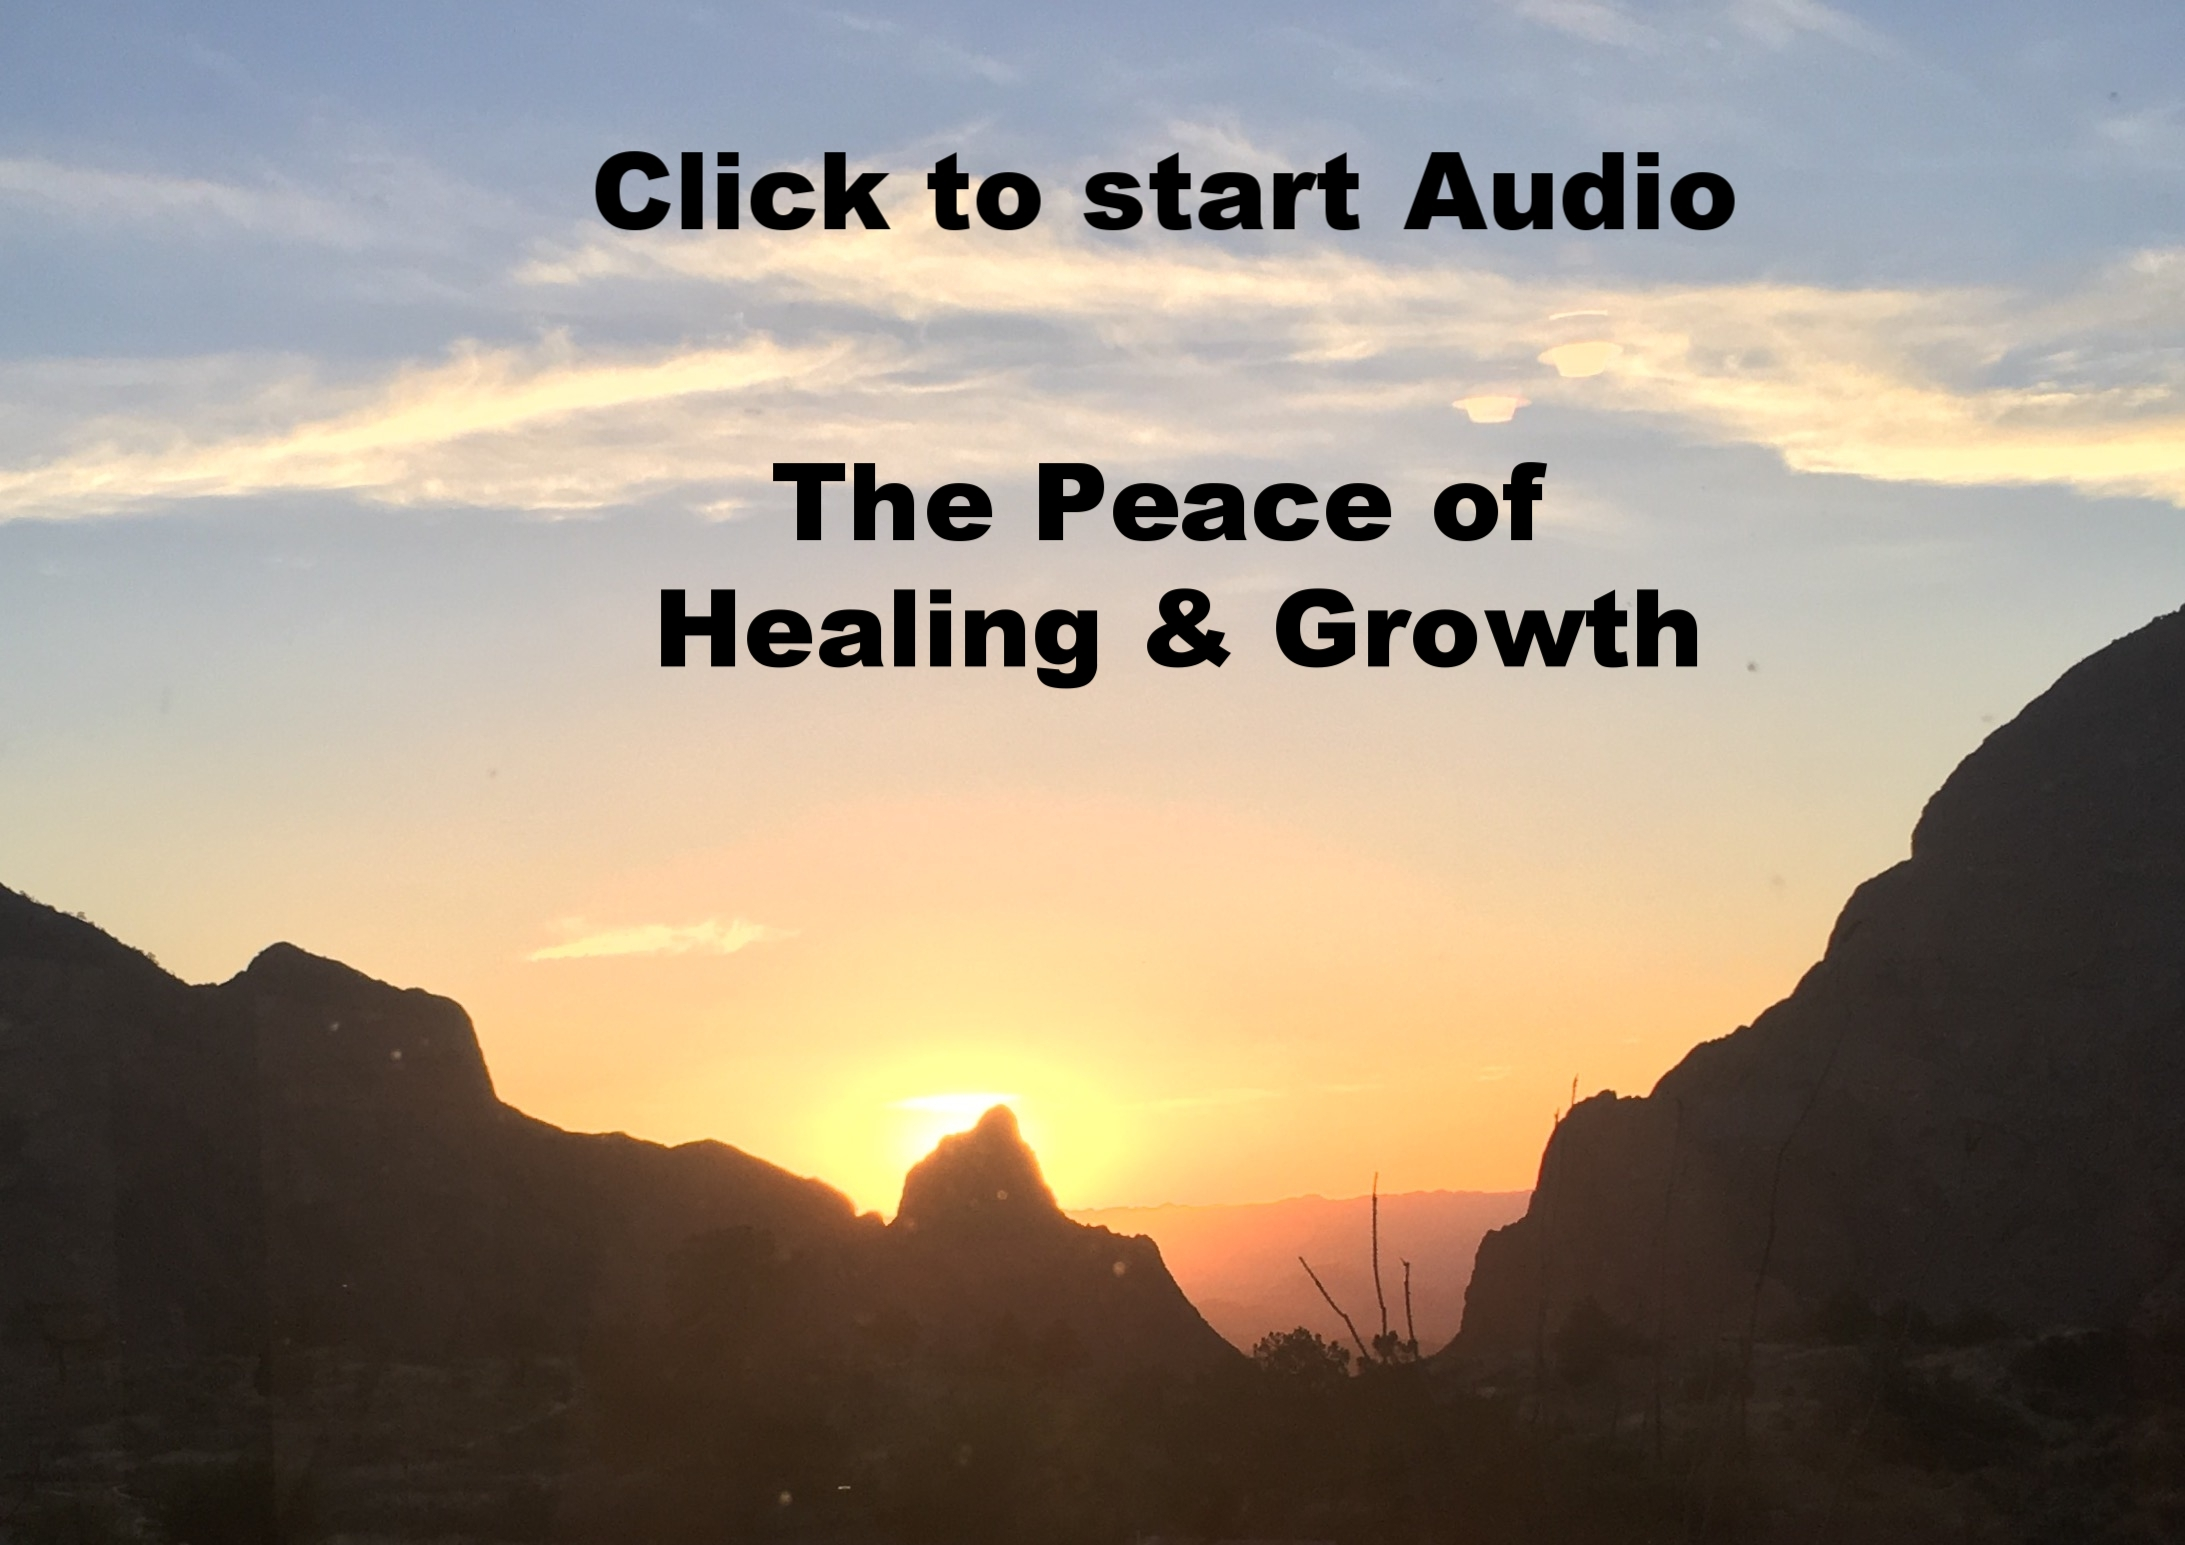 Audio on The Peace of Healing & Growth